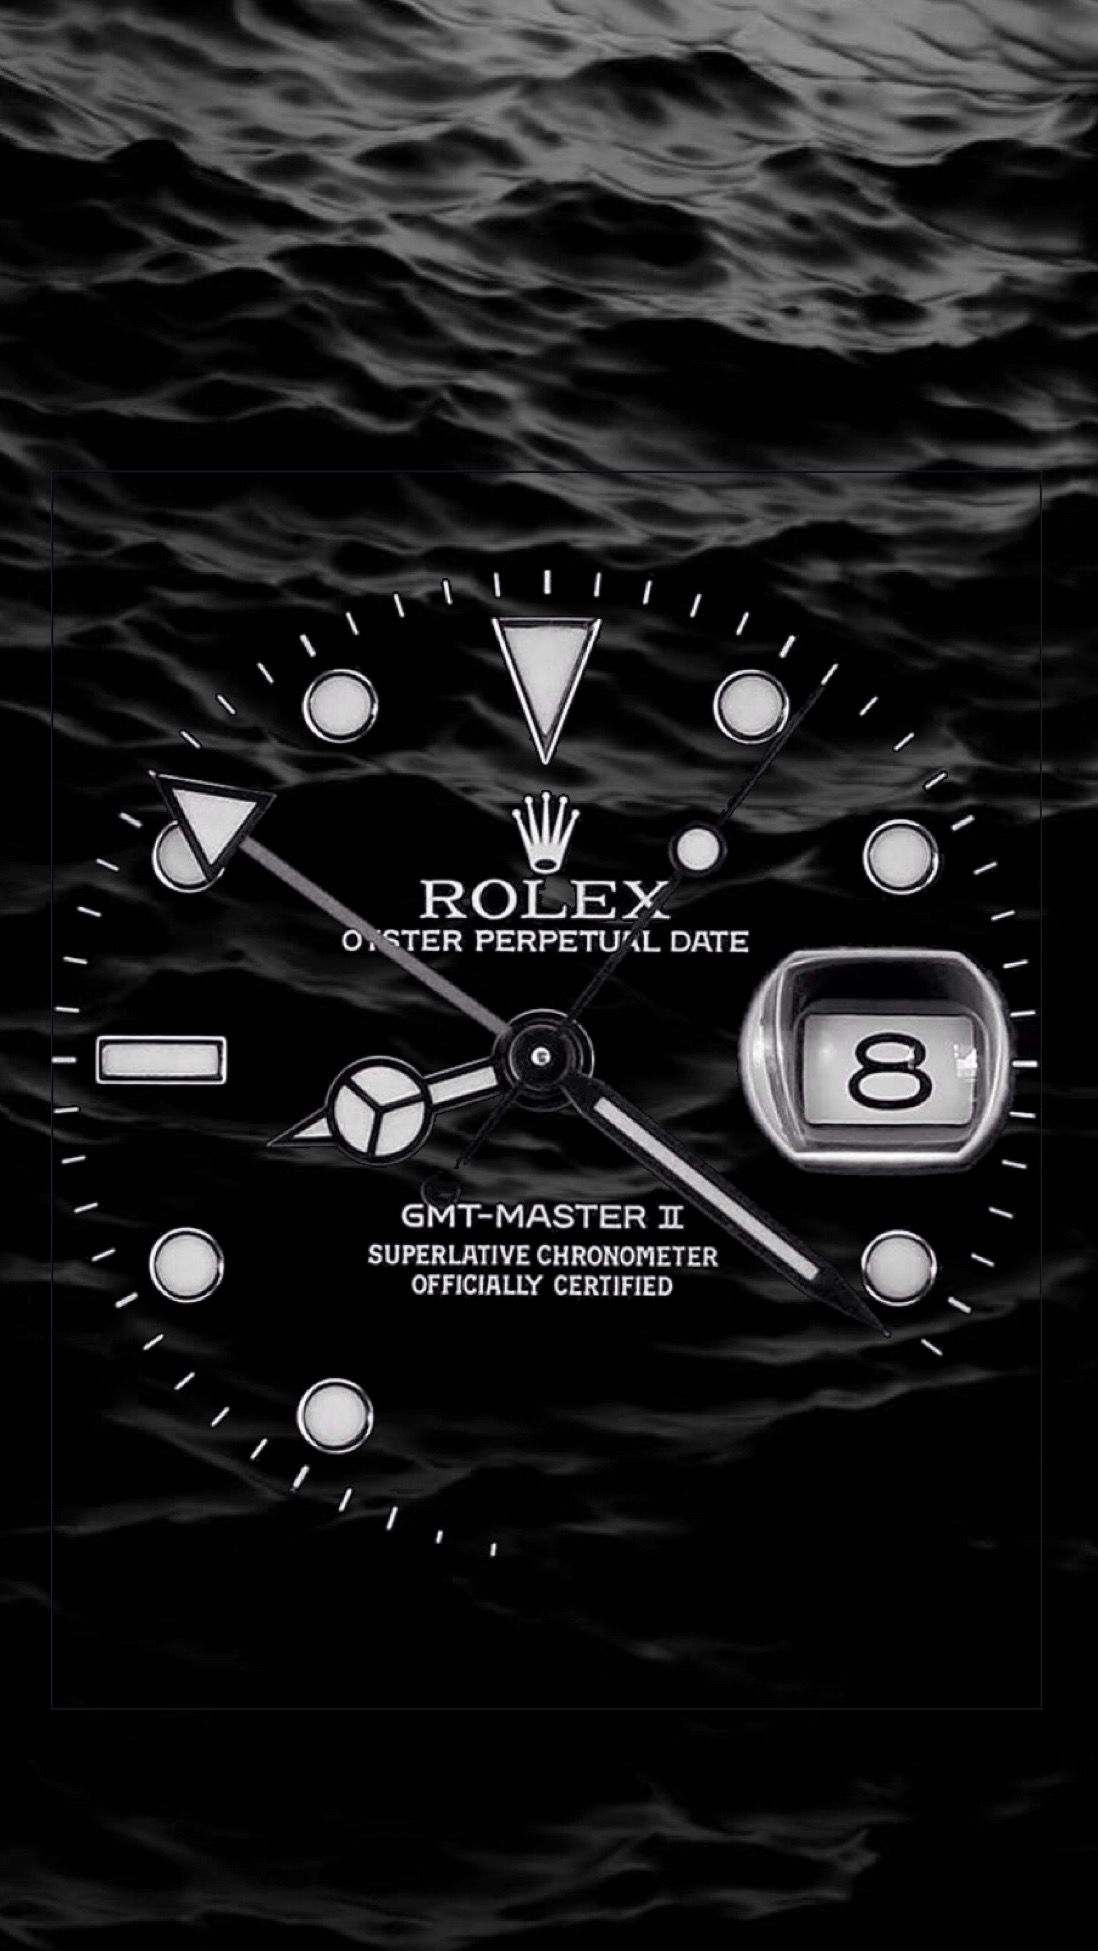 Rolex wallpaper   9 16 Phone   Pinterest   Wallpaper Rolex wallpaper